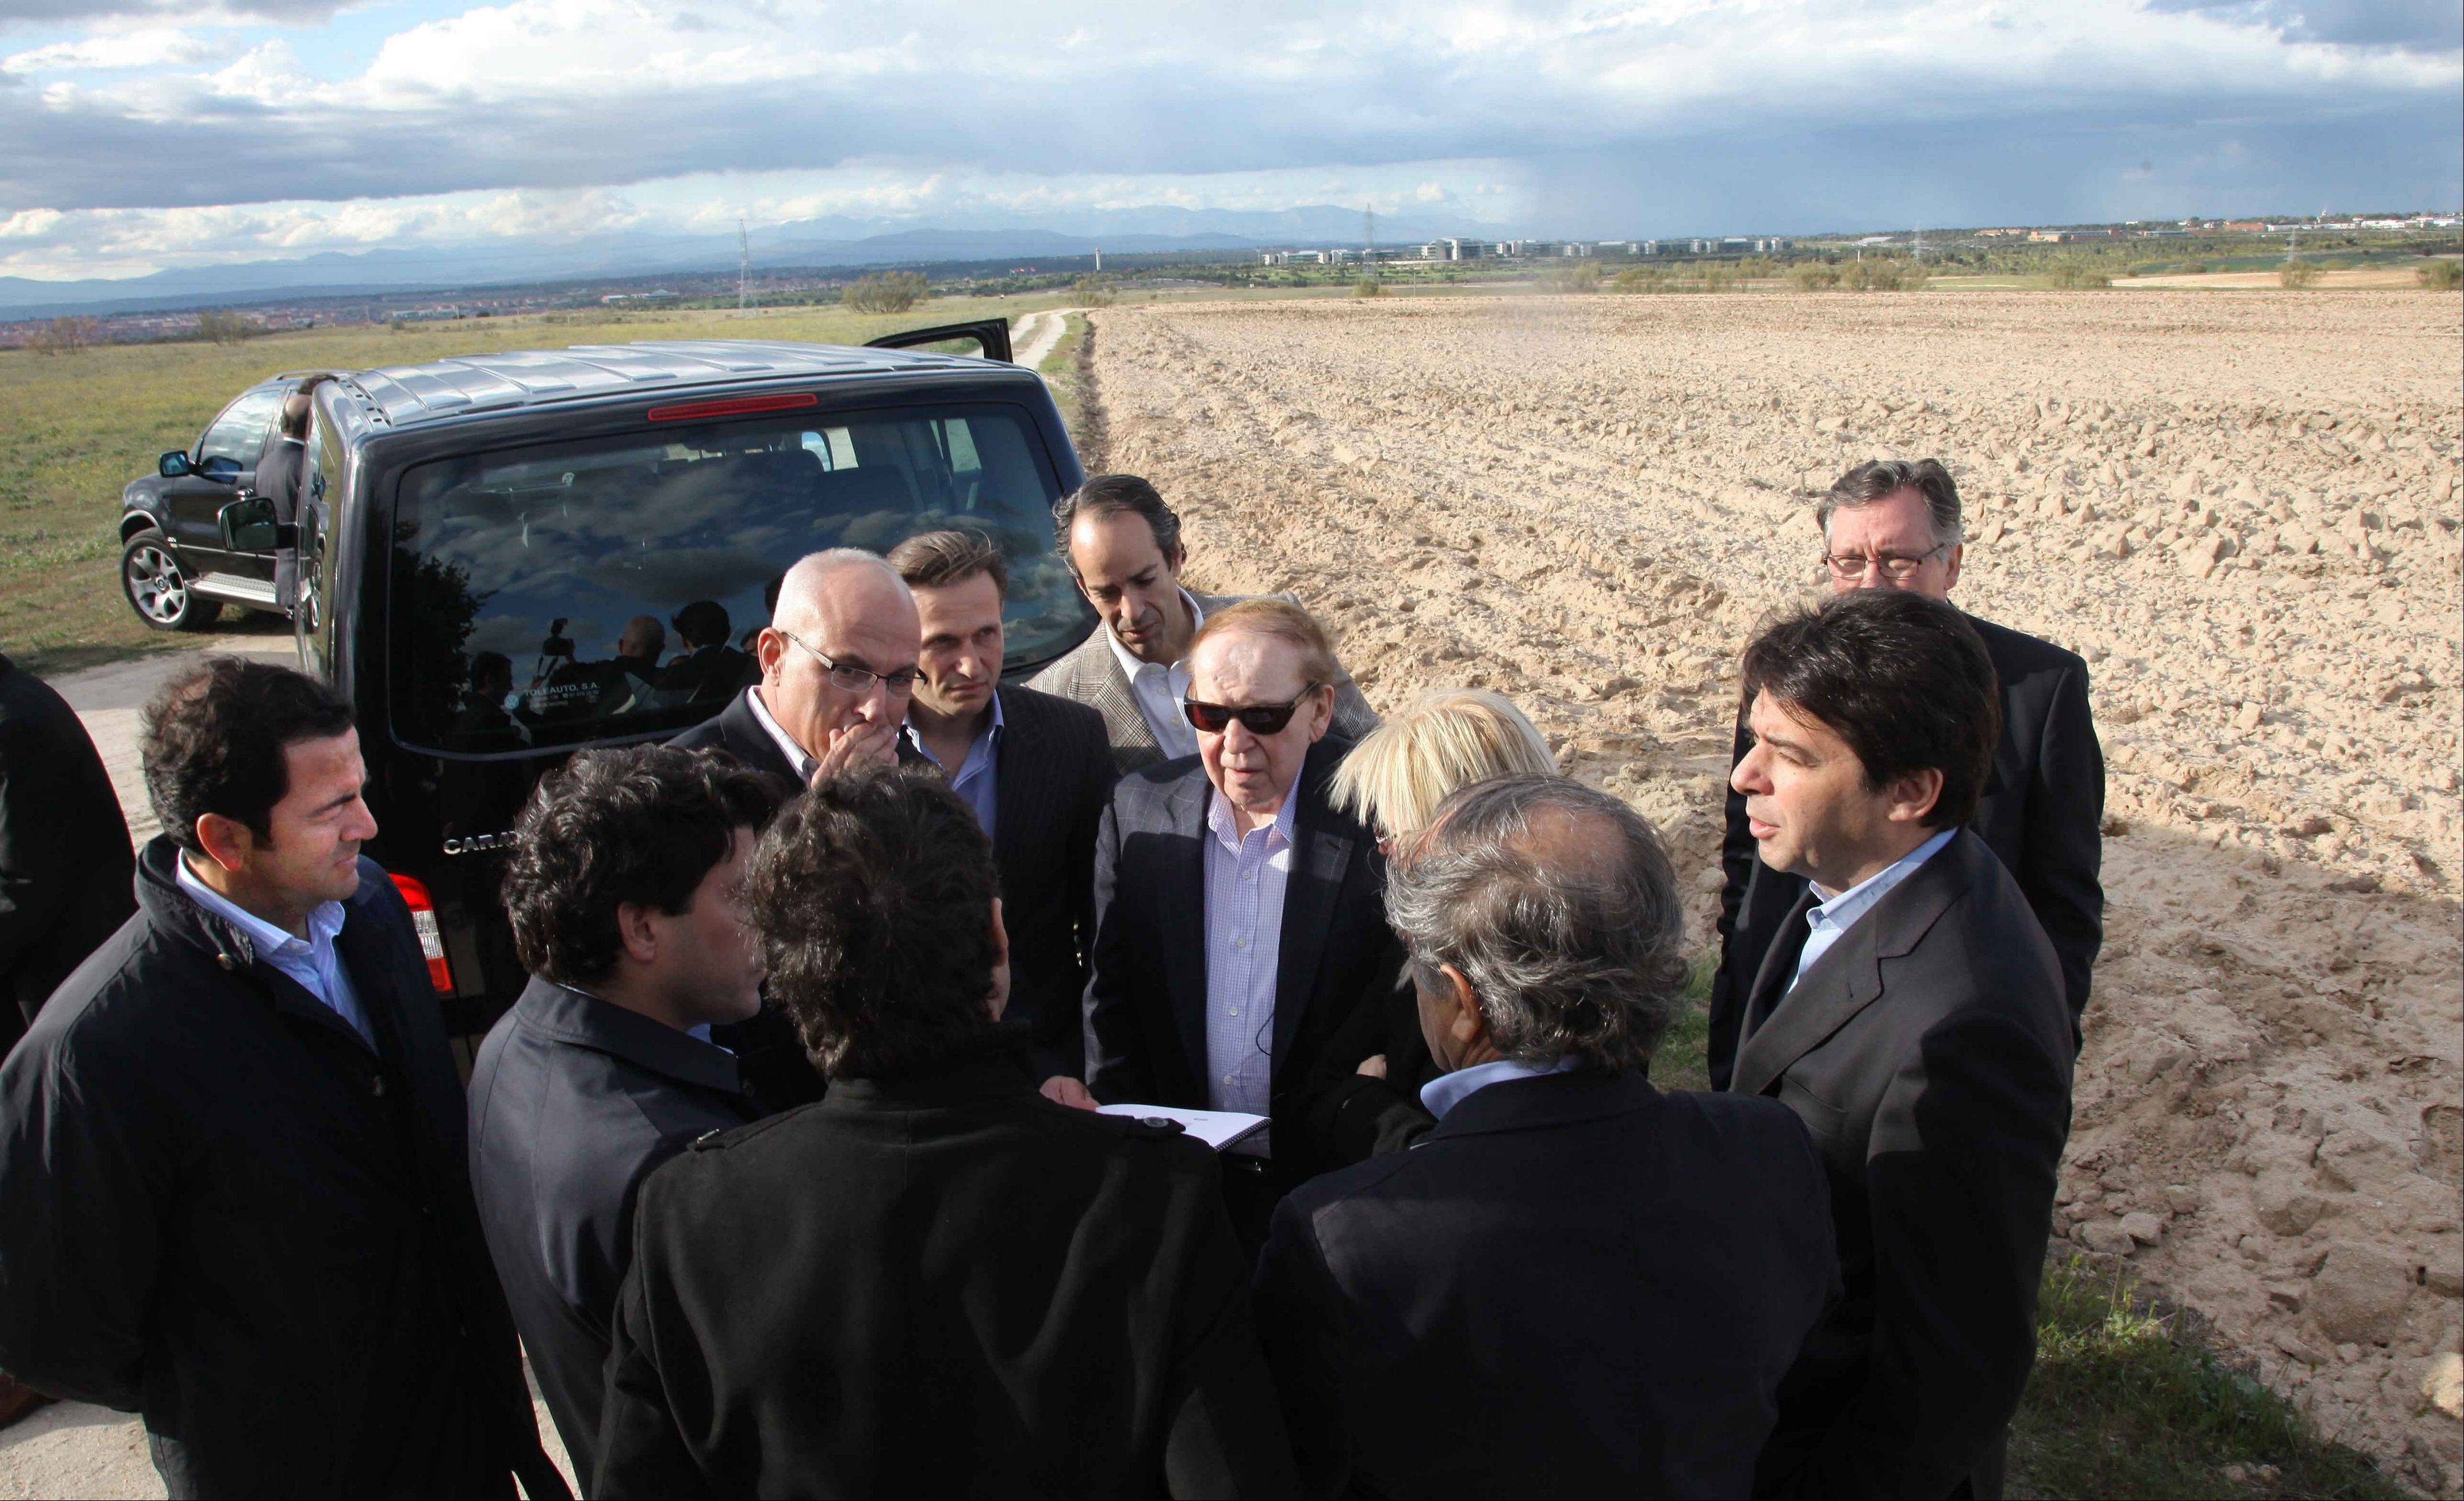 CEO of Las Vegas Sands Corp. Sheldon Adelson, centre with sunglasses, waves while visiting Alcorcon, which was one of the possible sites for the EuroVegas project on the outskirts of Madrid, with others unidentified.